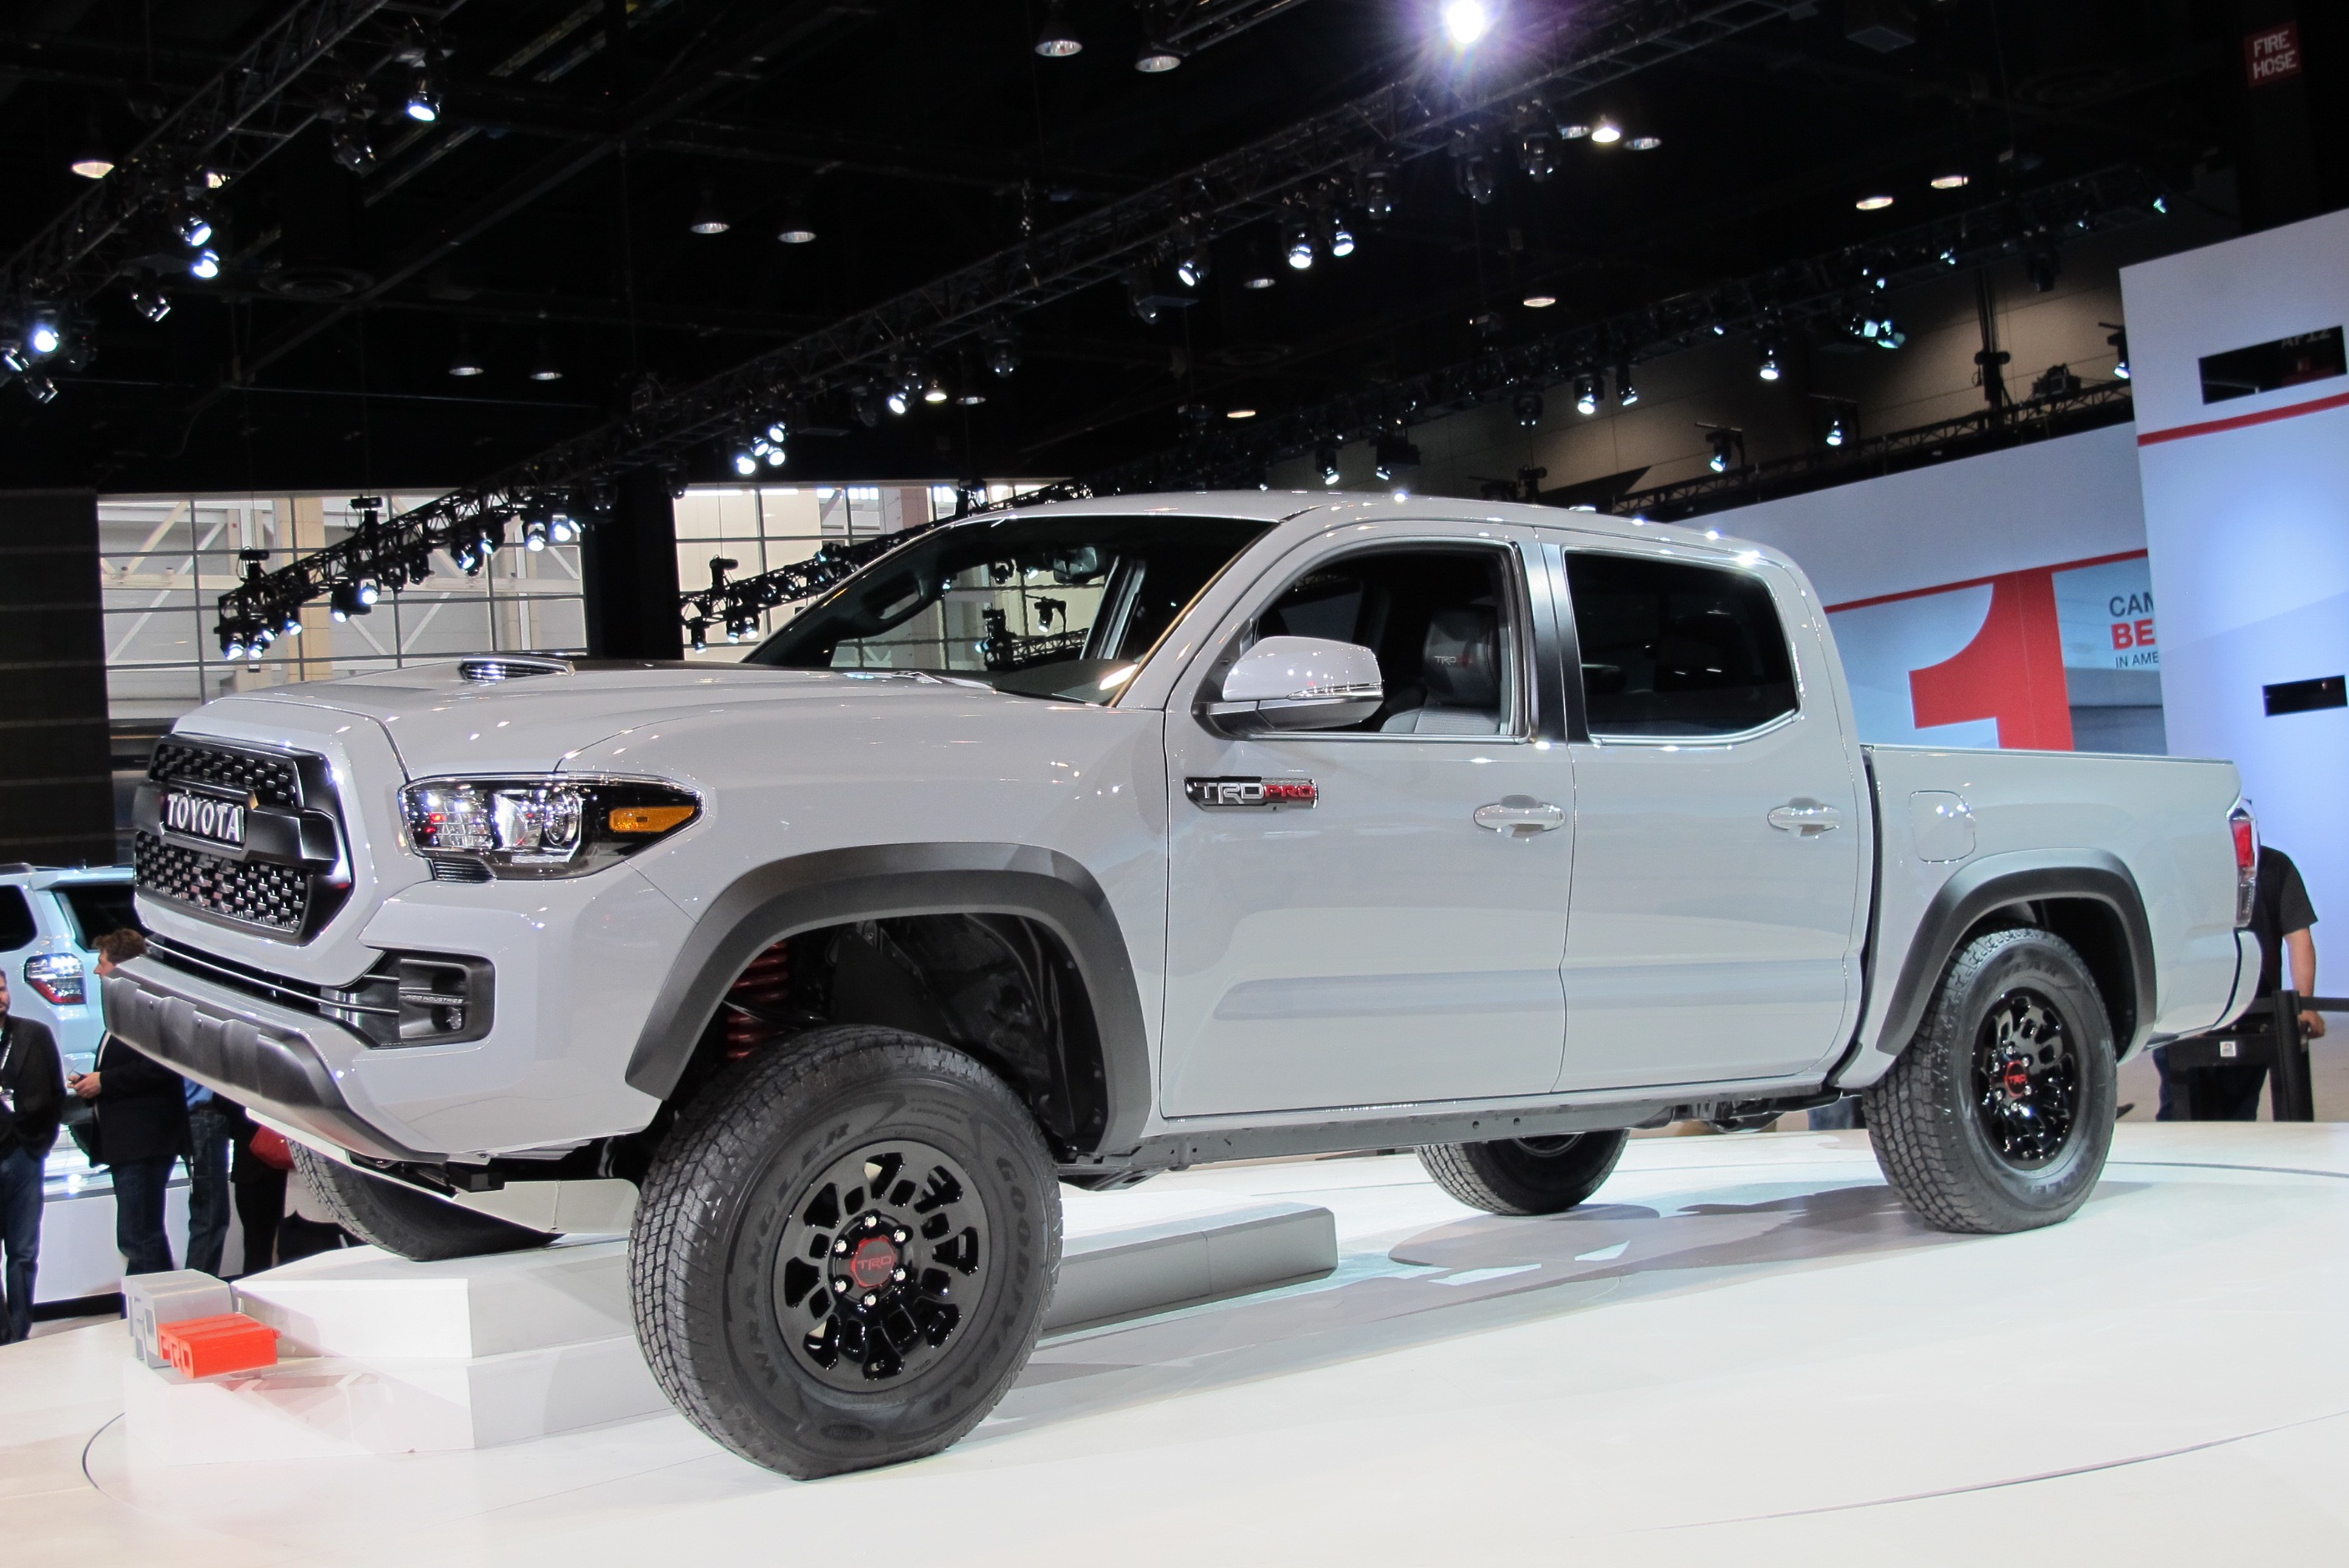 2017 Tacoma Trd Sport Price >> 2017 Toyota Tacoma TRD Pro Debuts At 2016 Chicago Auto Show: Live Photos